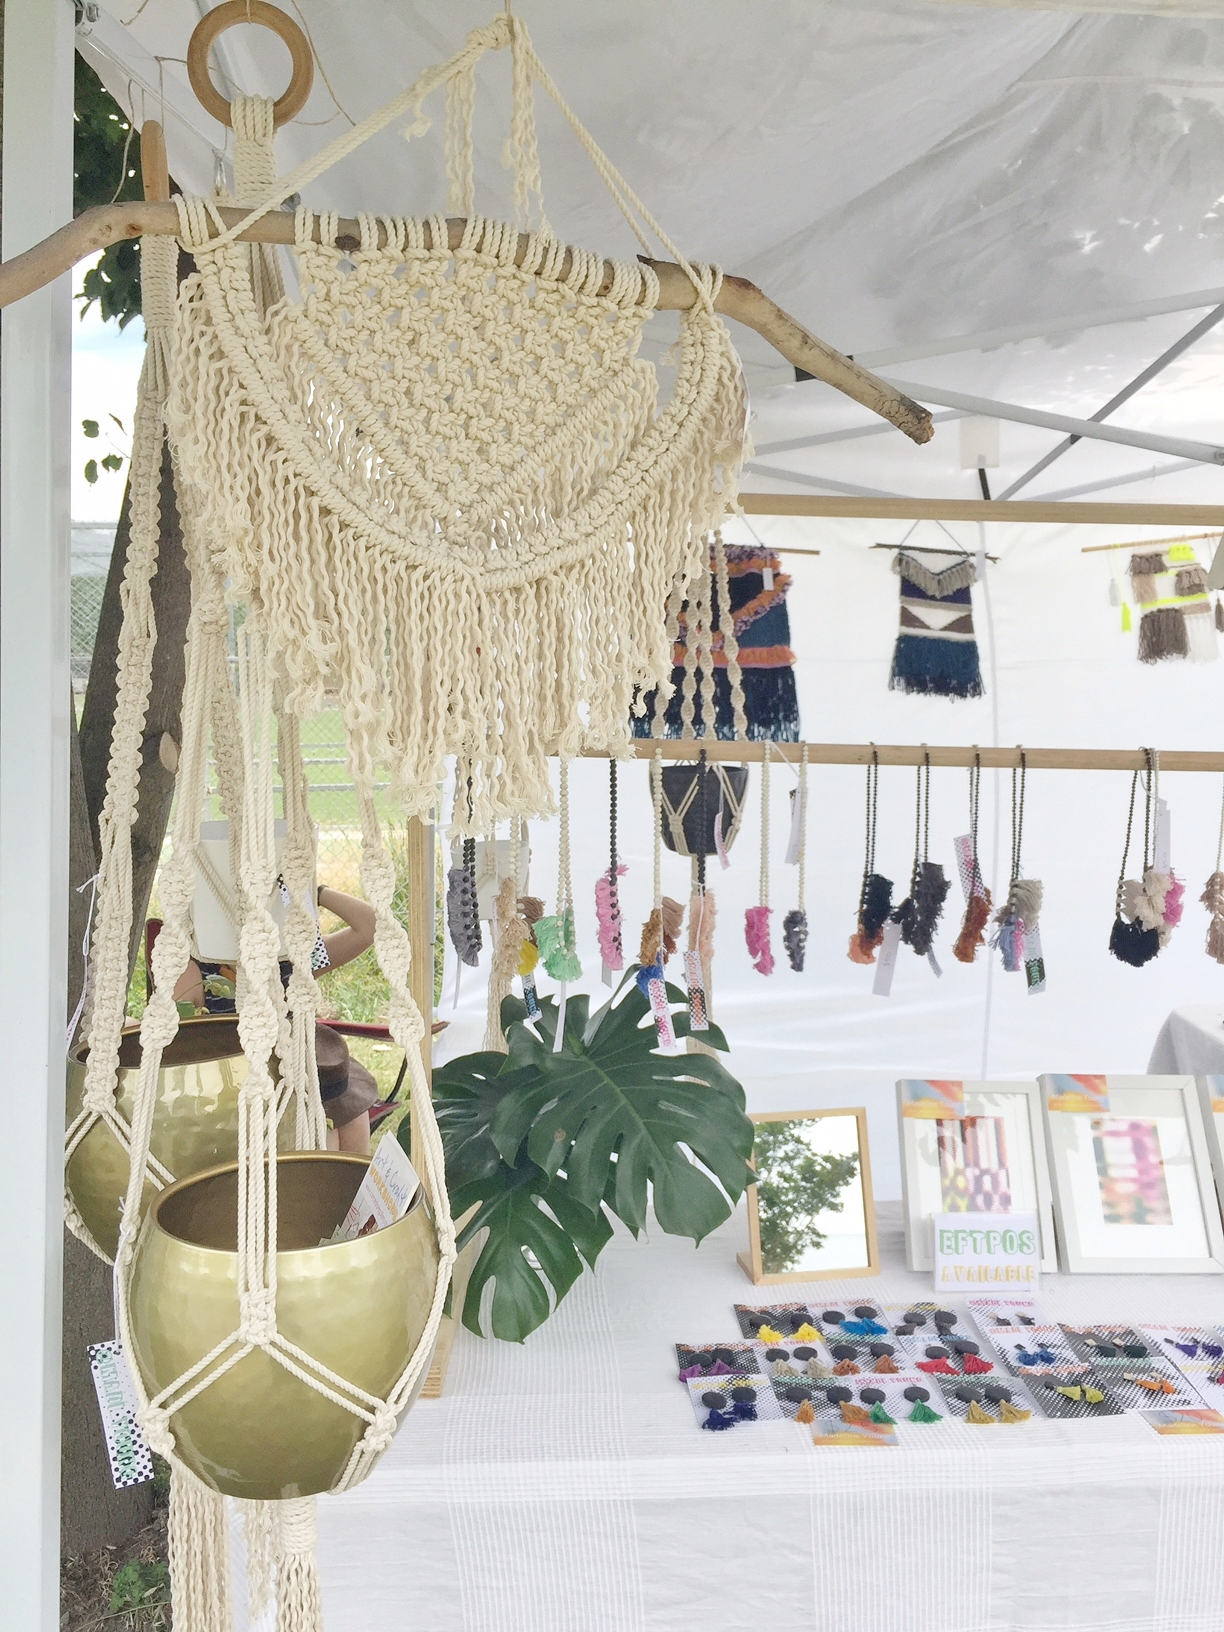 Madeline Young Market Stall - Handmade Market